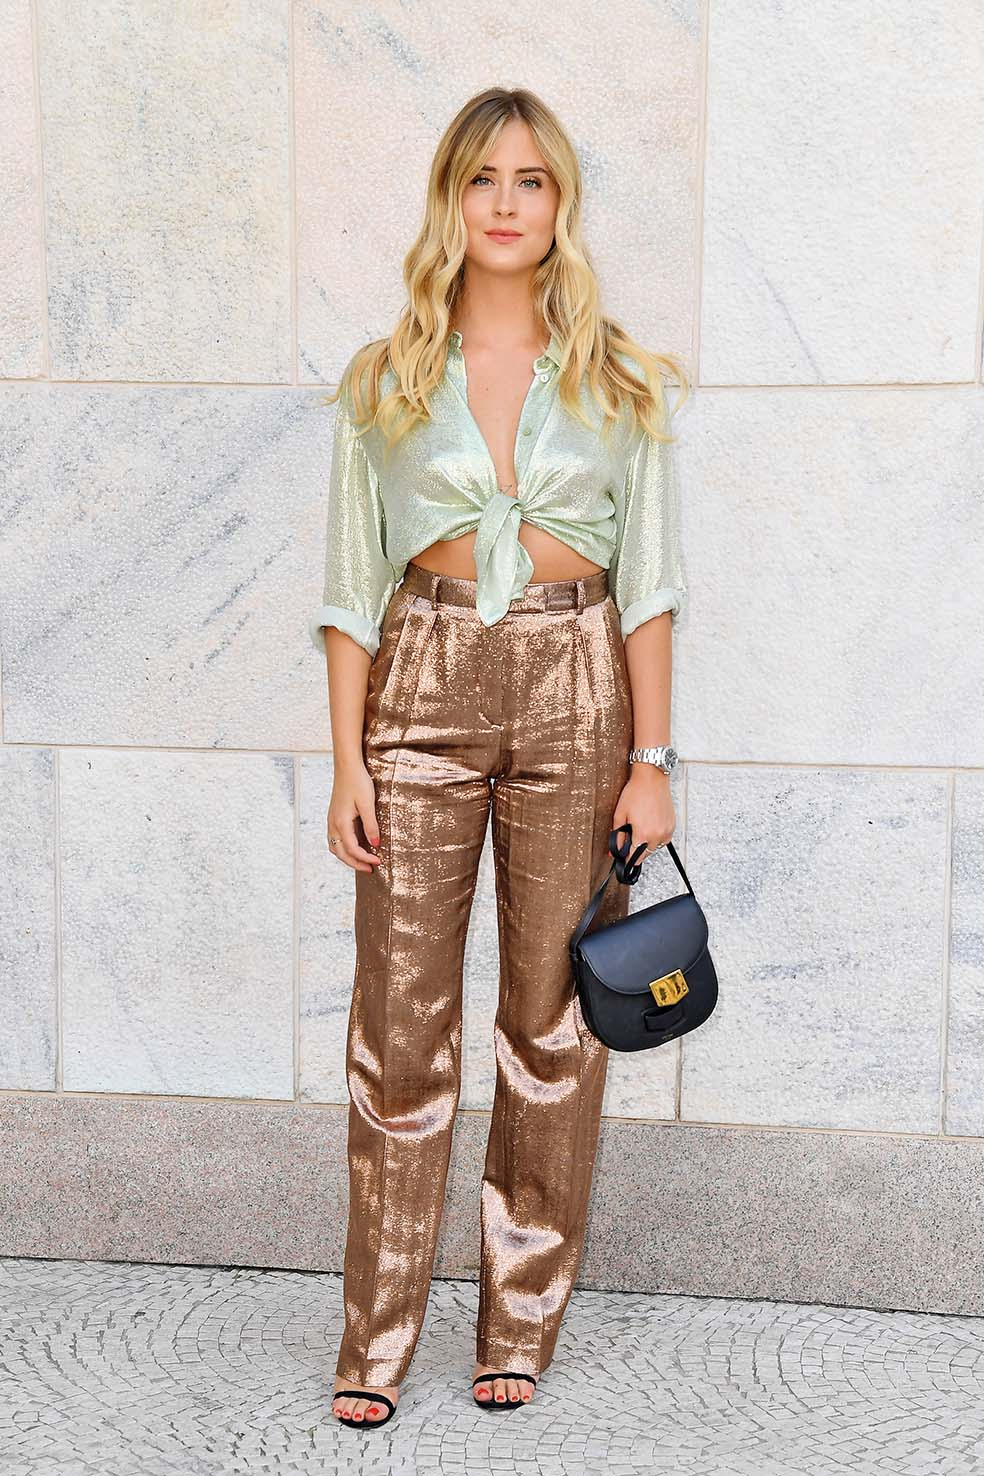 MILAN, ITALY - JUNE 15: Valentina Ferragni arrives at the Alberta Ferretti show during Milan Men's Fashion Week Spring/Summer 2019 on June 15, 2018 in Milan, Italy.  (Photo by Jacopo Raule/Getty Images)